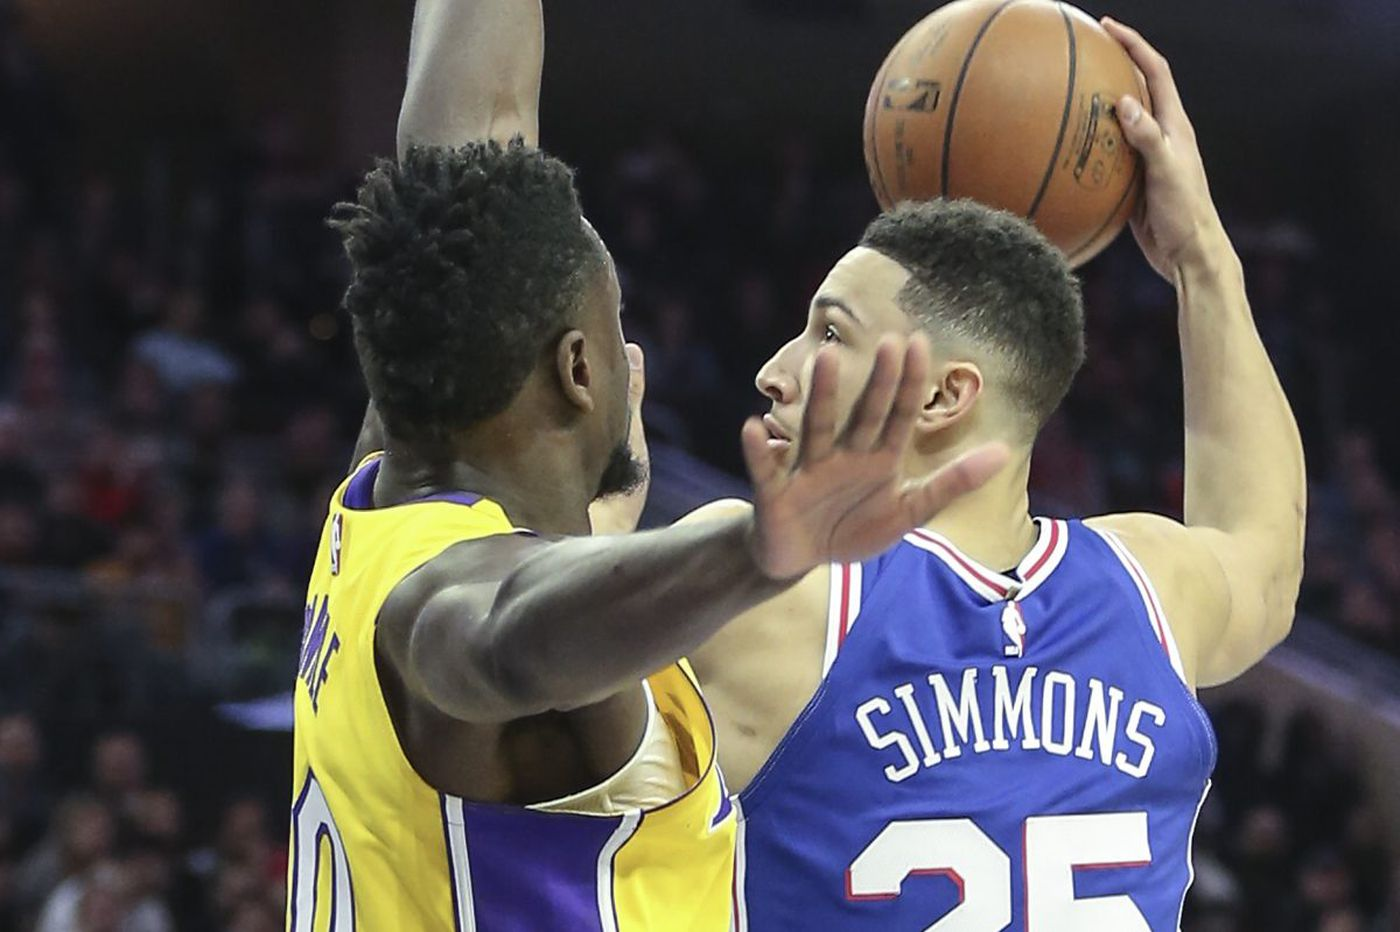 Ben Simmons' triple-double not enough as 76ers lose late to Lakers